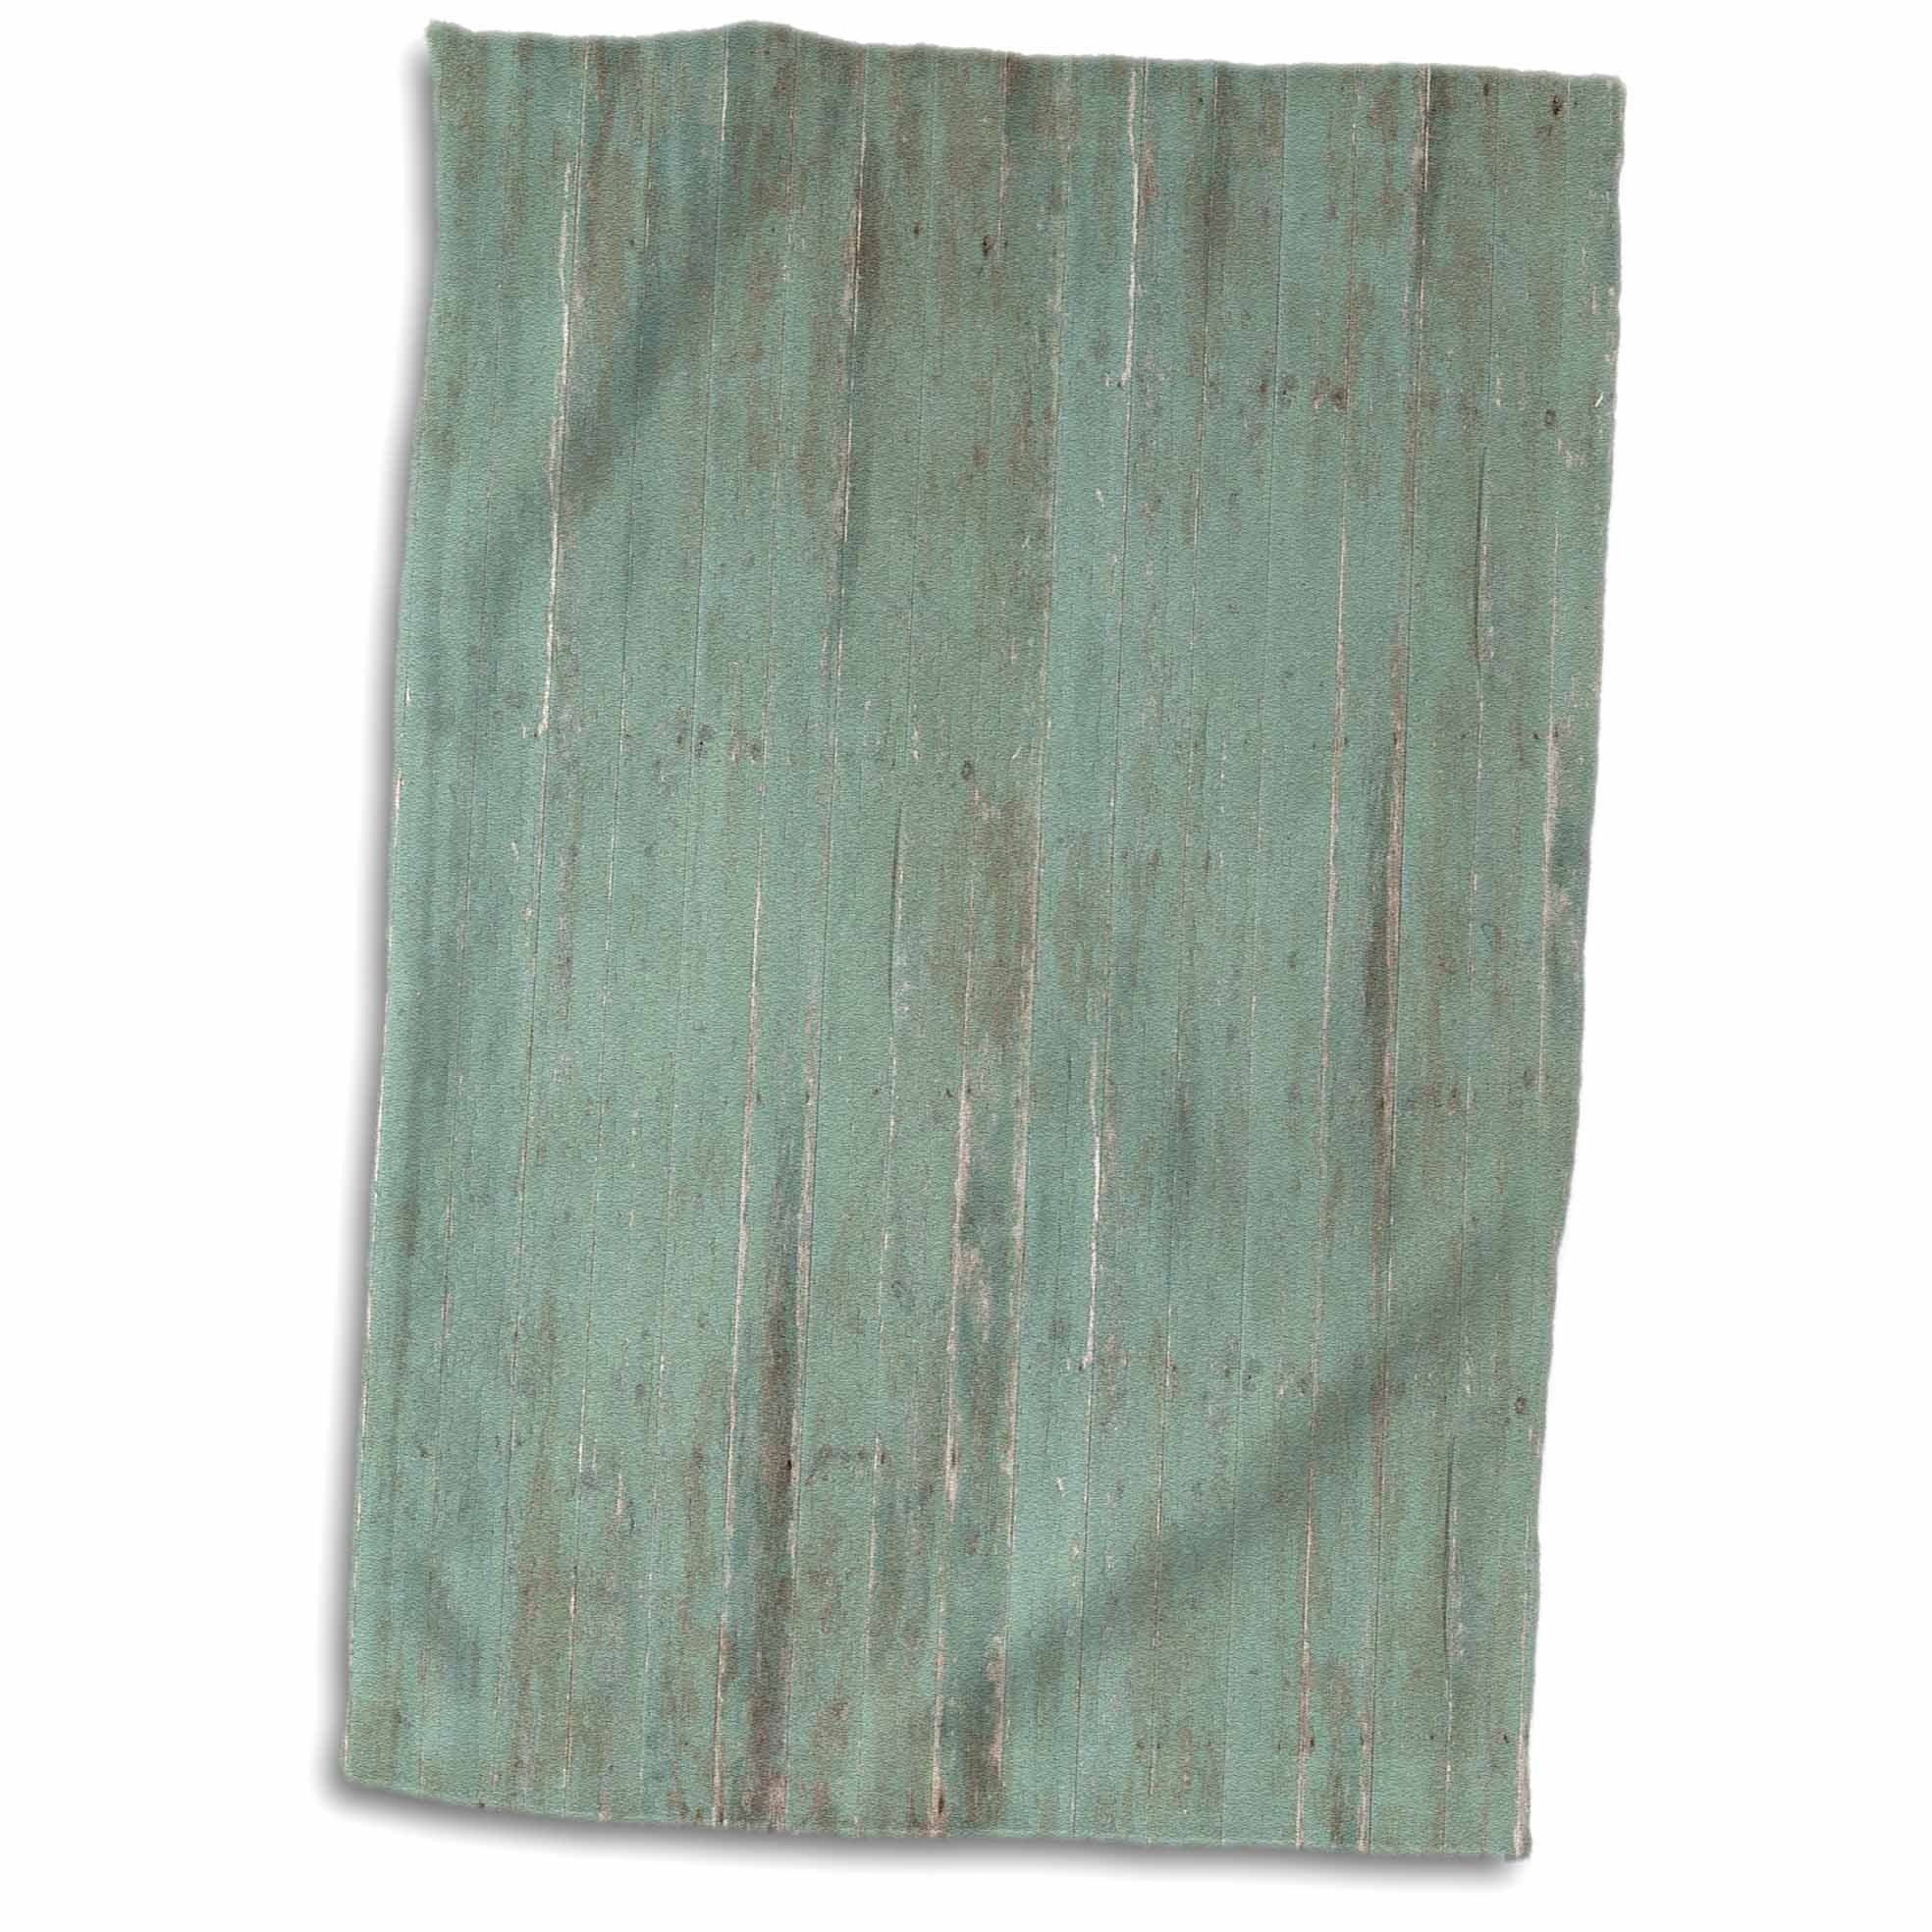 3D Rose Rustic Green Wood Look TWL_183265_1 Towel, 15'' x 22''